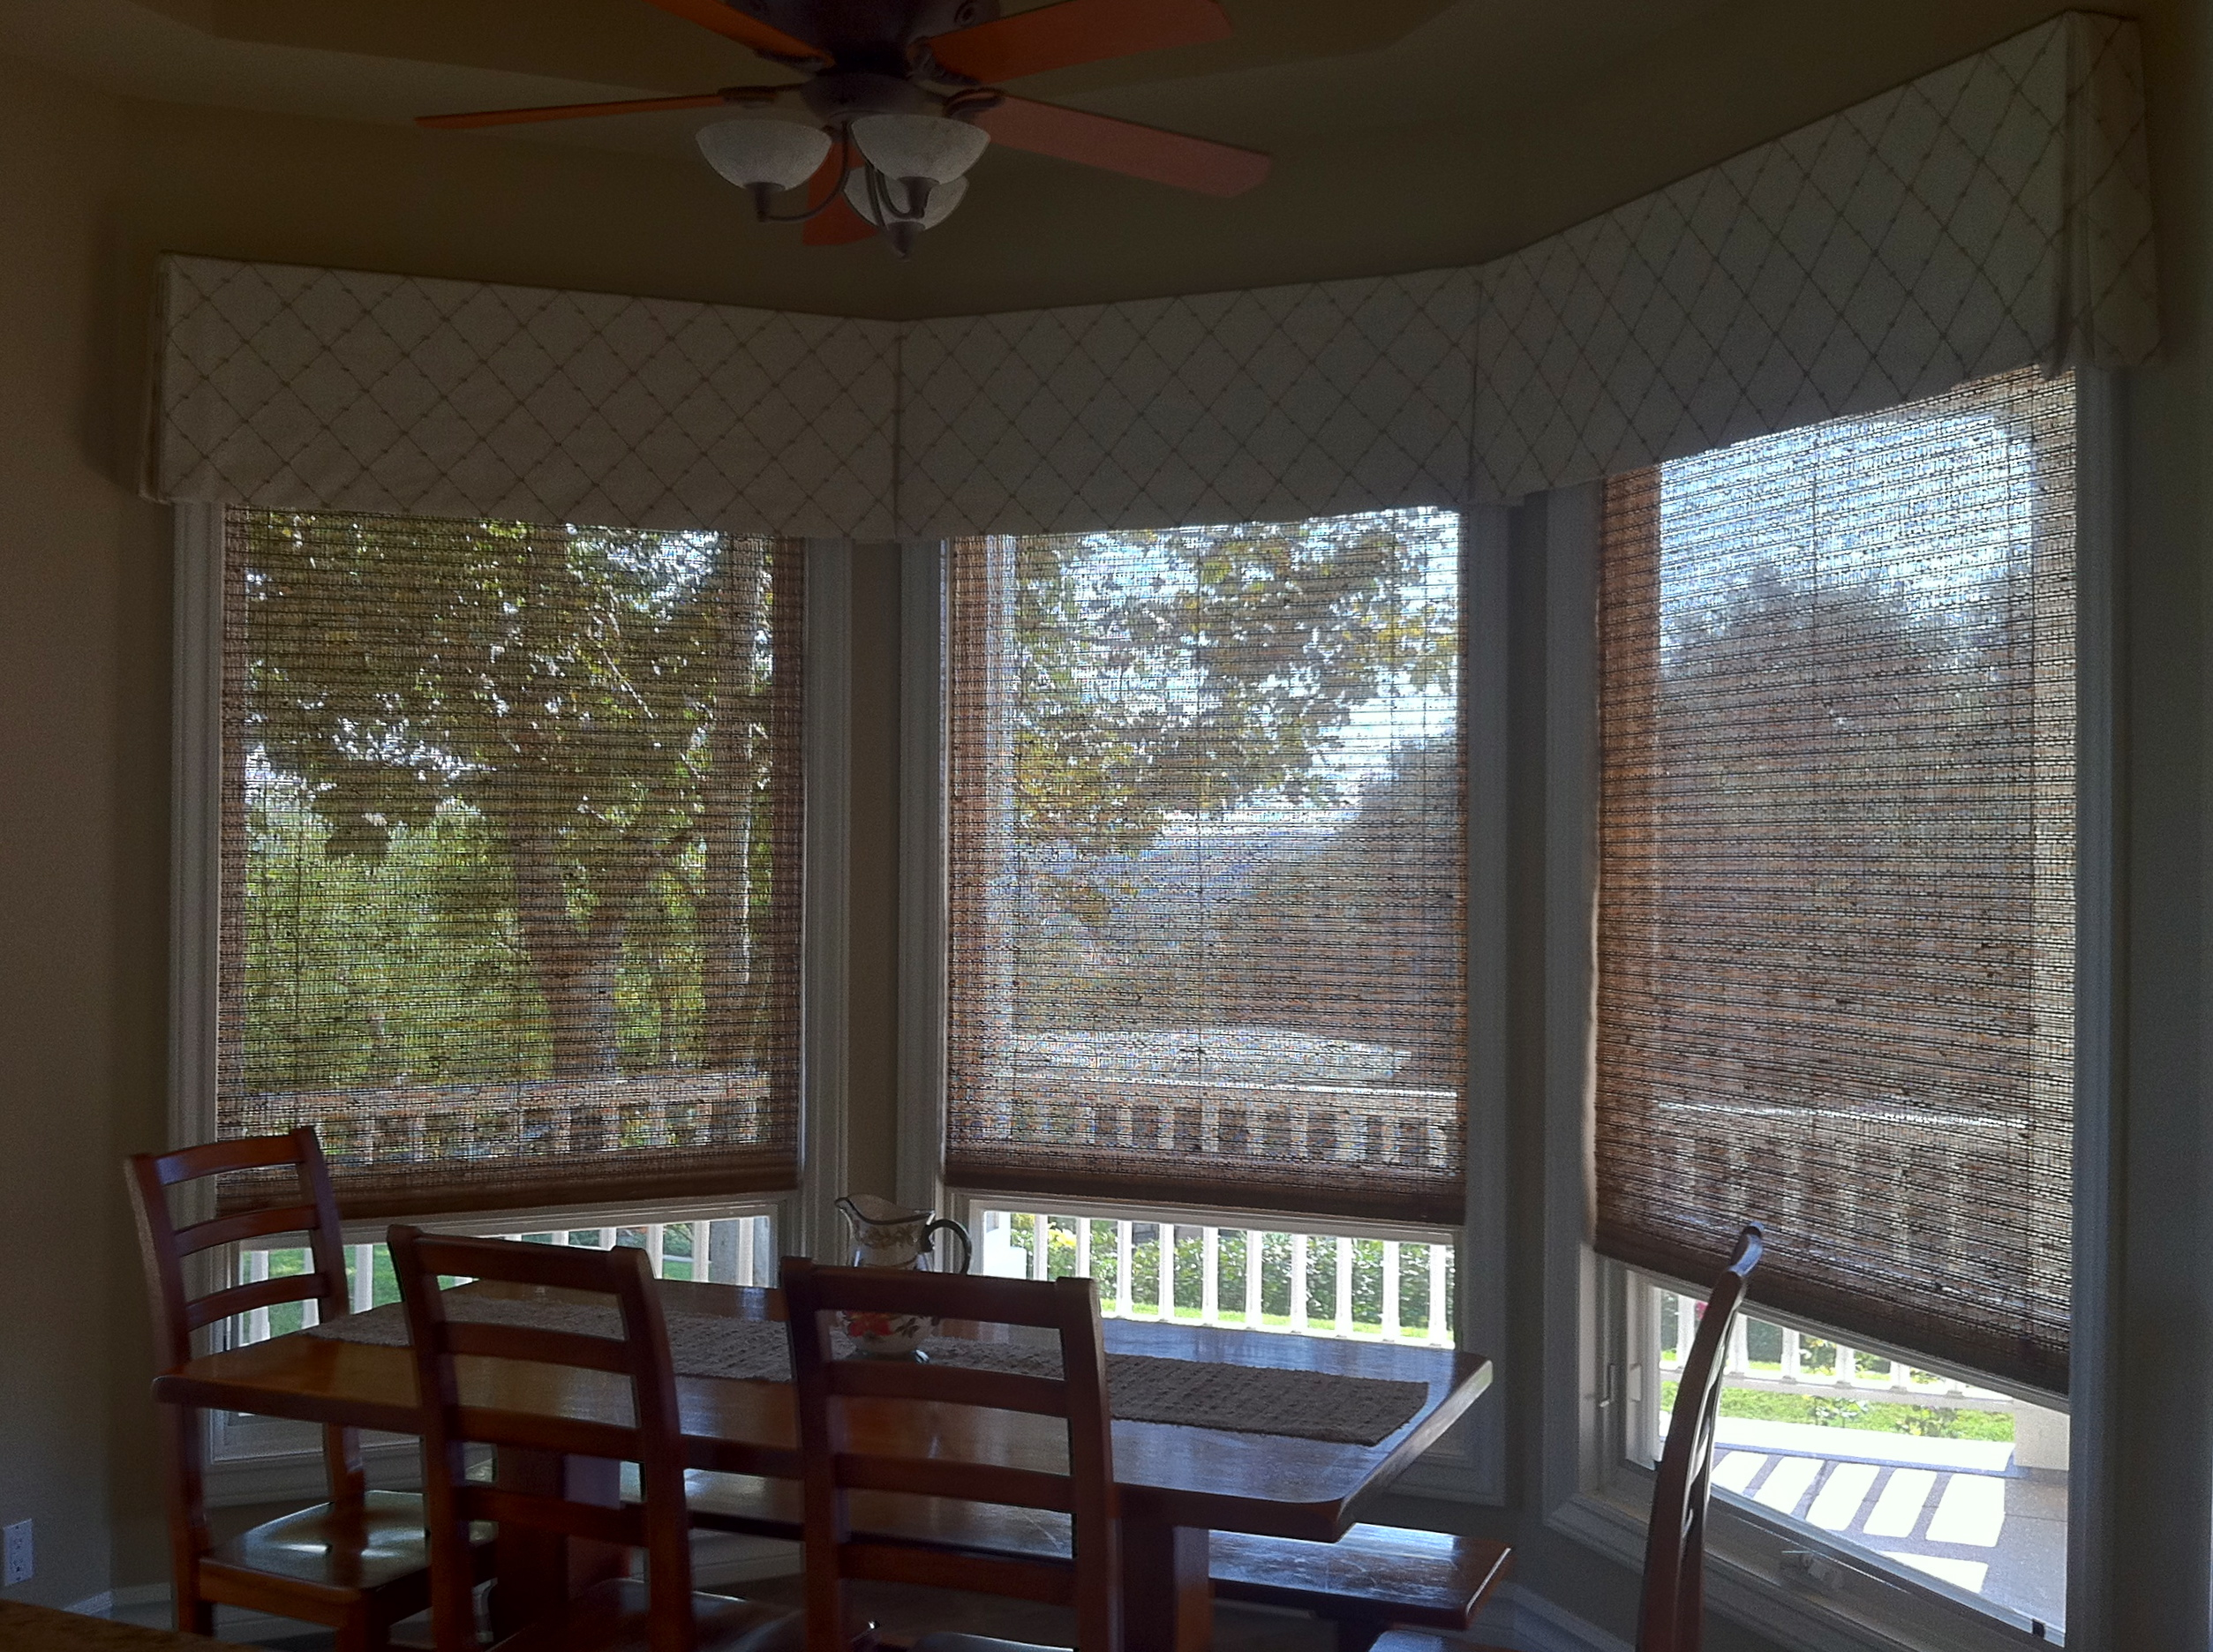 residential window edwardsville custom mounted valance treatments fallon wood products top pole il o smithton